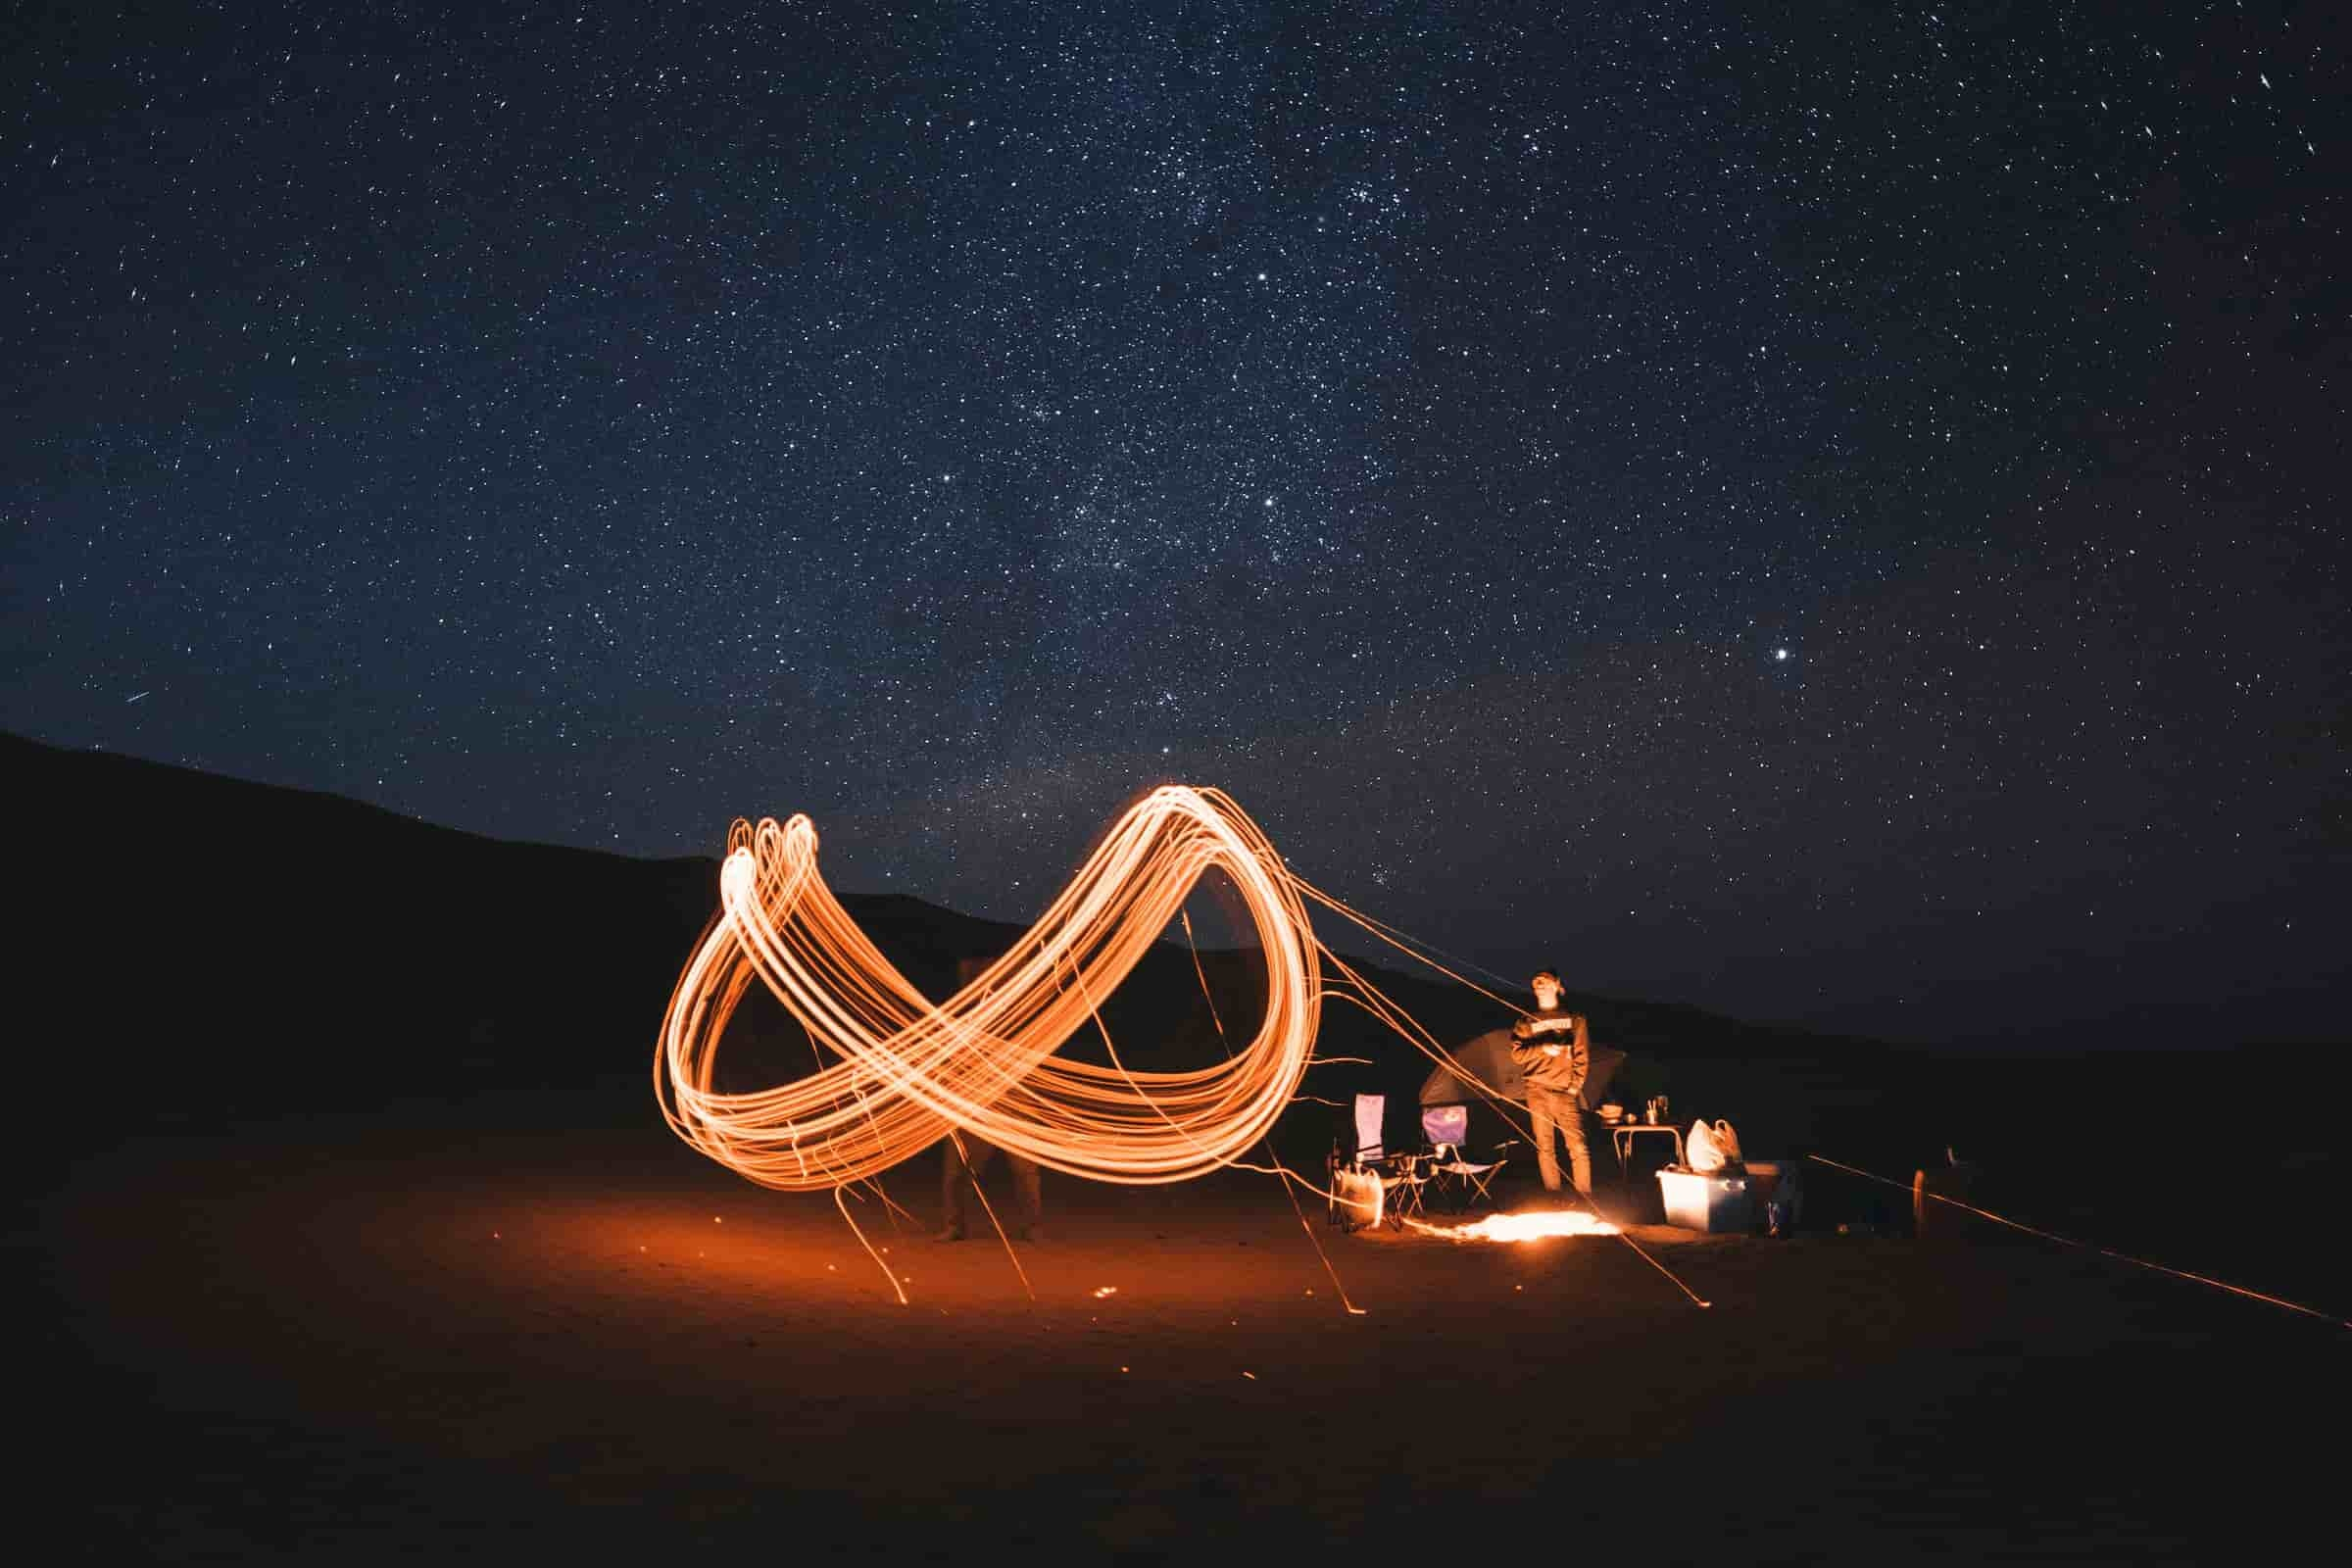 Light loop under the stars, photo by freddie marriage from Unsplash